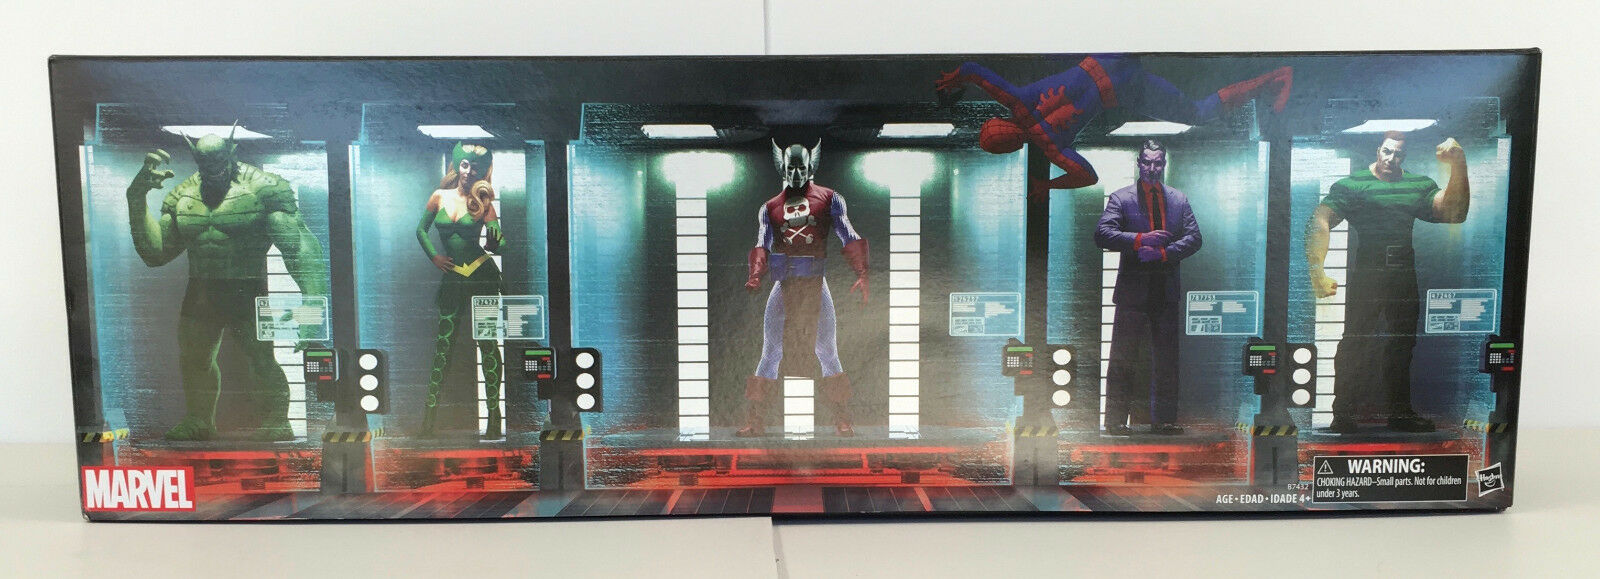 2016 HASBRO COMIC-CON EXCLUSIVE MARVEL THE RAFT WITH SPIDER-MAN & 5 VILLAINS MIB